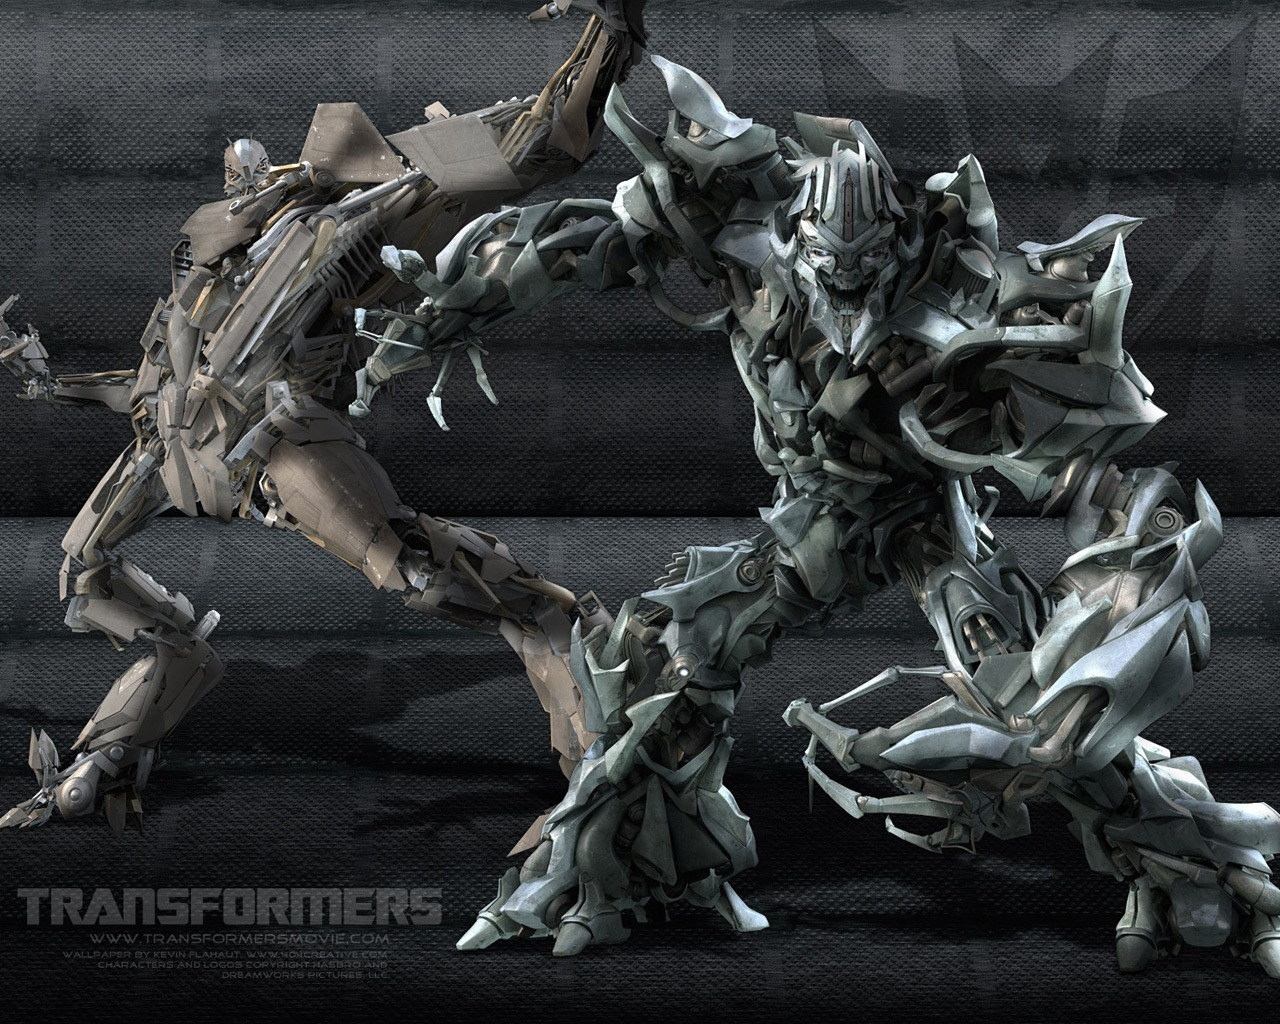 http://2.bp.blogspot.com/-vltQfnPDtqY/TrcNIiaOfaI/AAAAAAAAALI/at_eTTOfIl0/s1600/strarscream_megatron_decepticons_wallpaper_transformers_movies_wallpaper_1280_1024_932.jpg